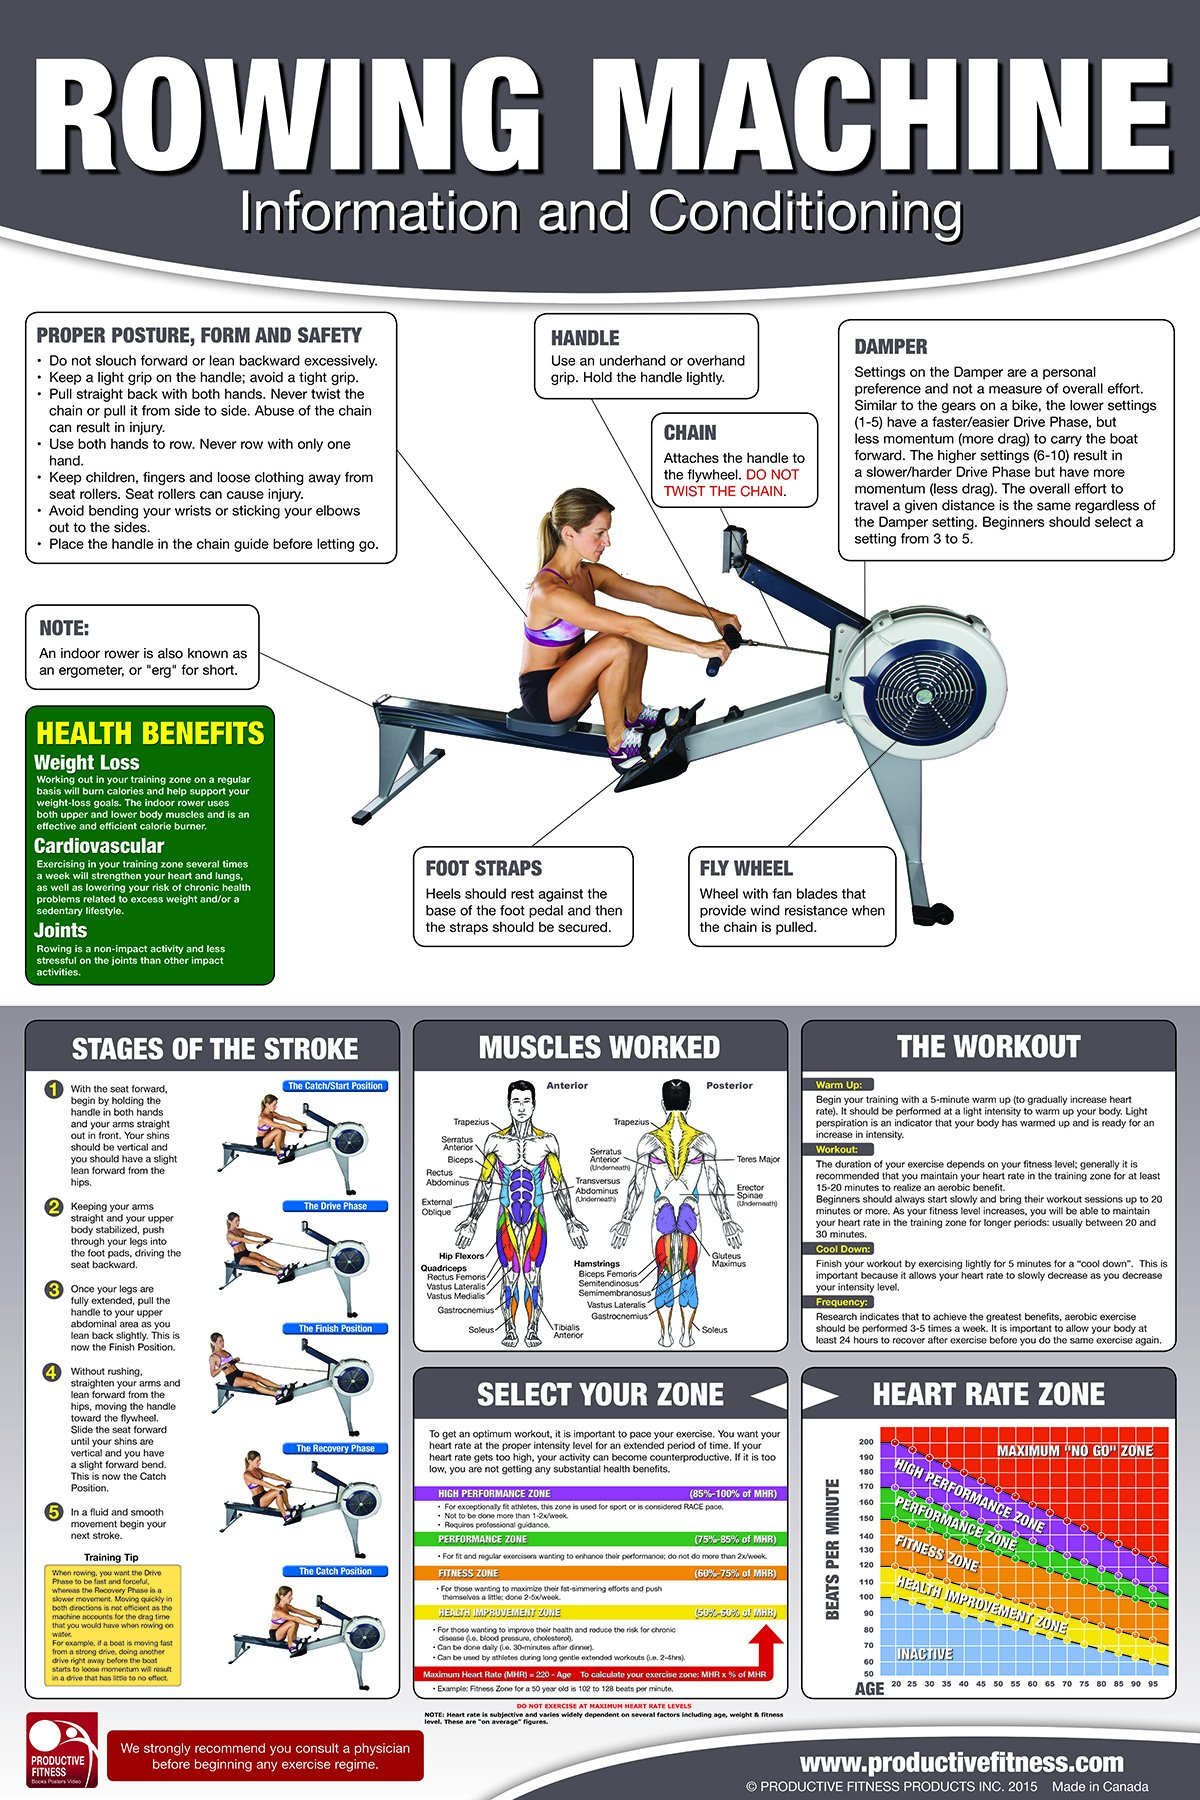 Rowing machine posterchart how to use a rower how to use an rowing machine posterchart how to use a rower how to use an erg full body workout laminated 24x36 inches mike jespersen 9781926534565 amazon nvjuhfo Image collections